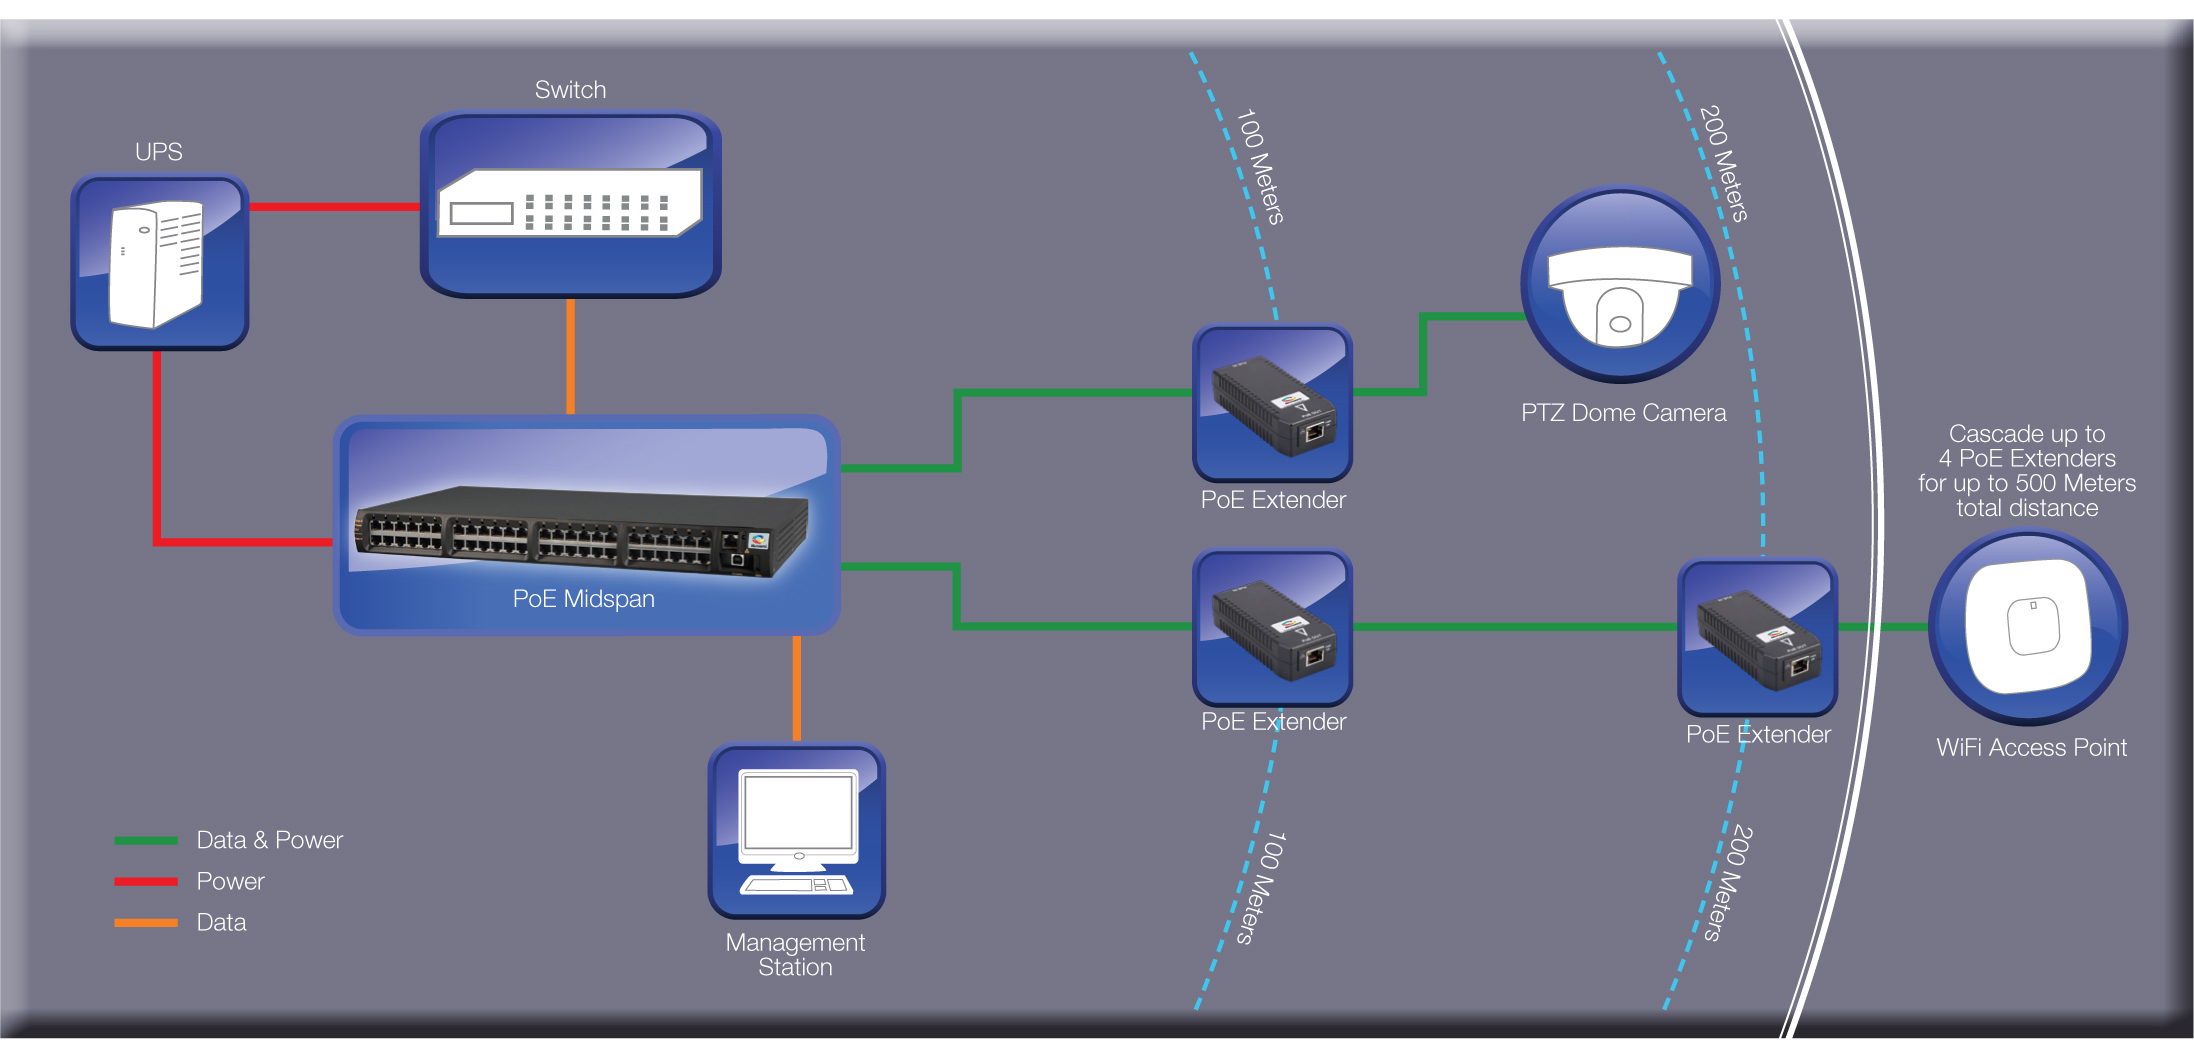 how does a network look when using an extender?